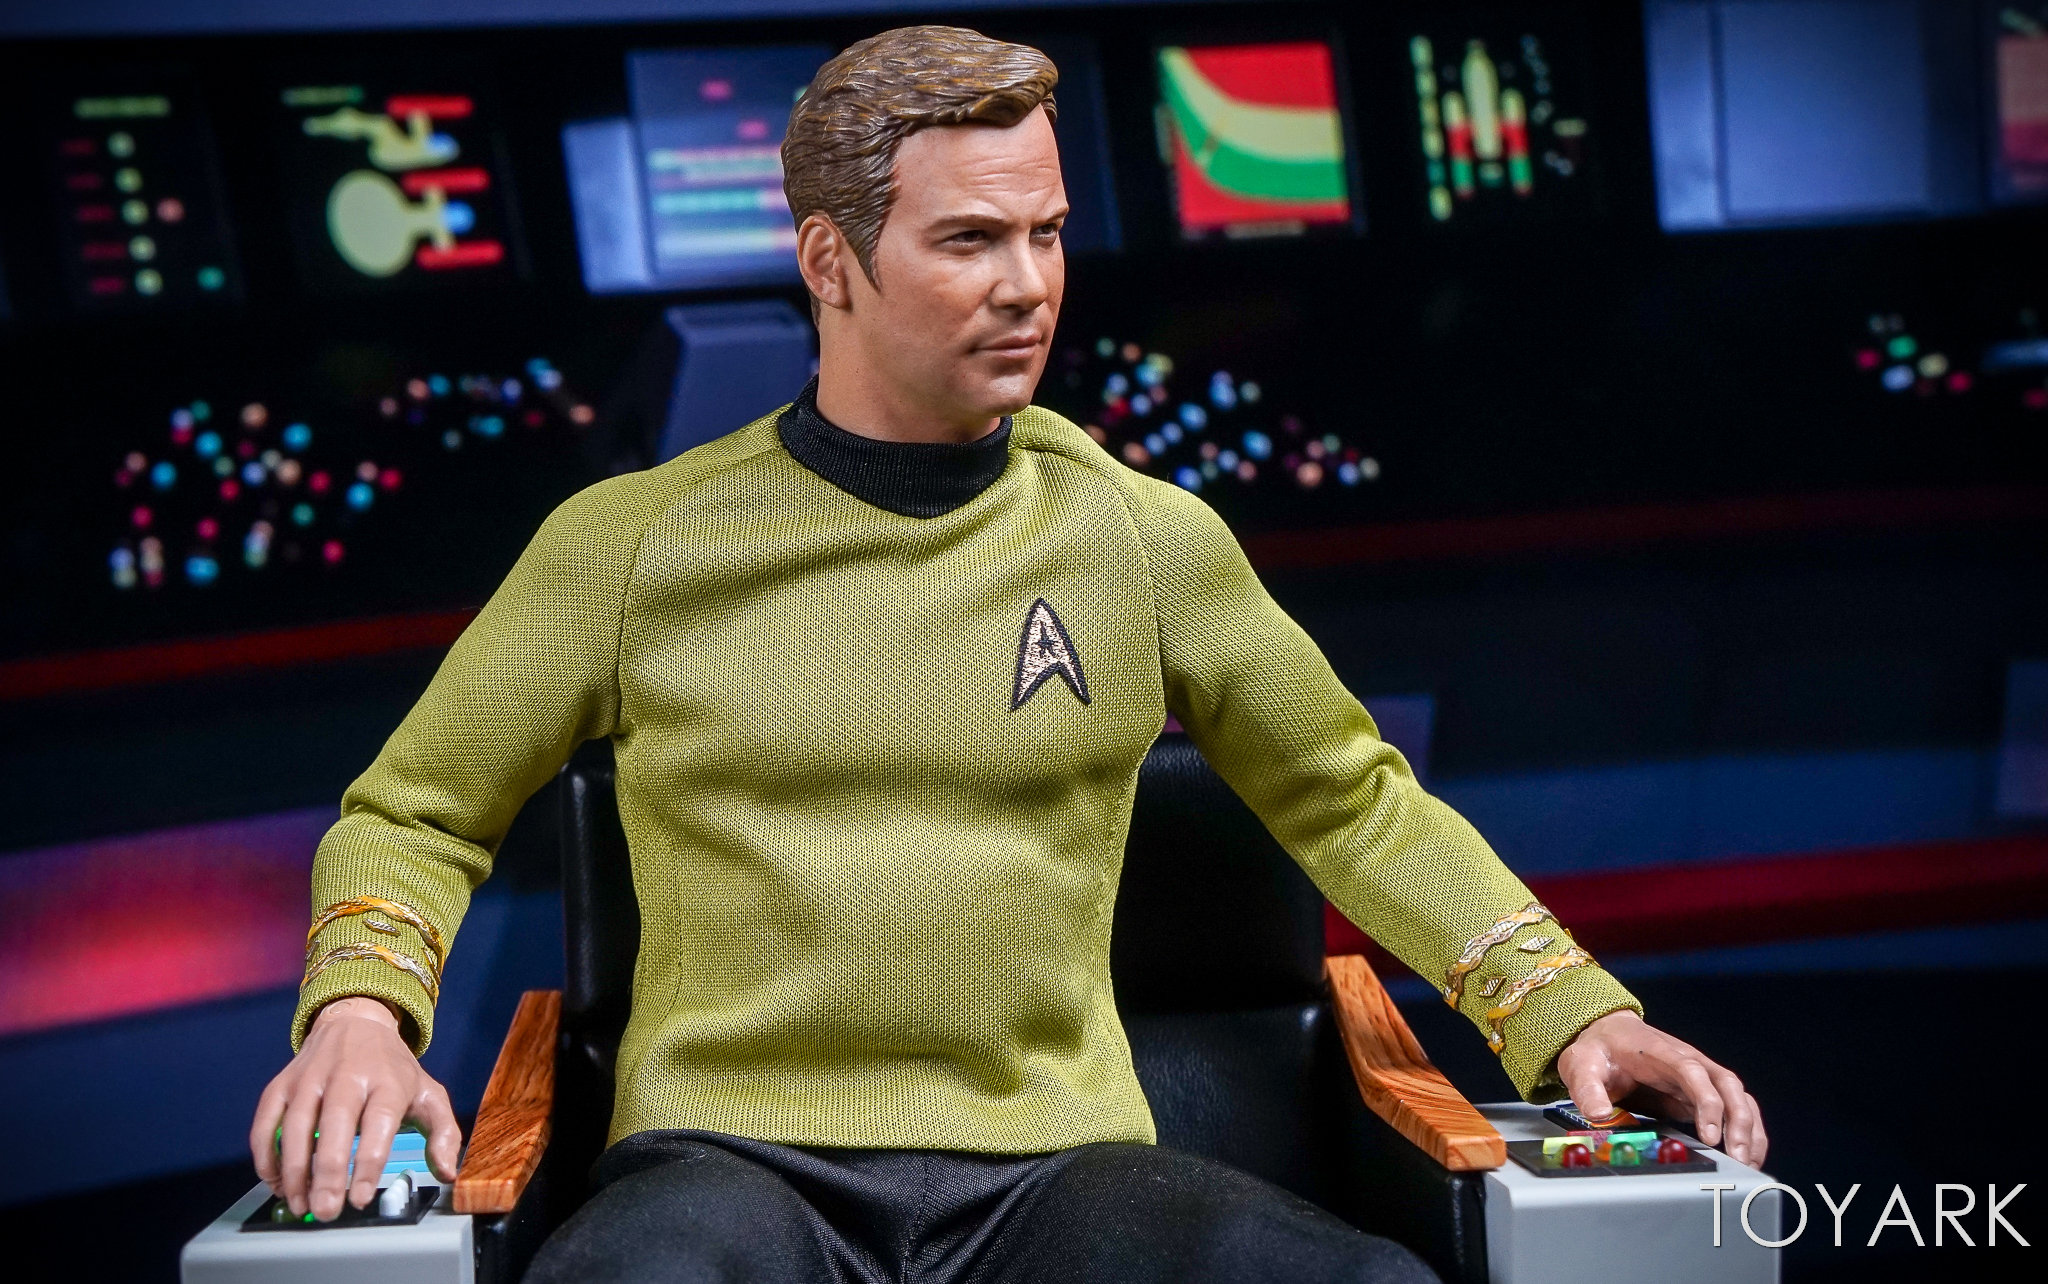 http://news.toyark.com/wp-content/uploads/sites/4/2017/12/QMX-Star-Trek-Captain-Kirk-Chair-042.jpg